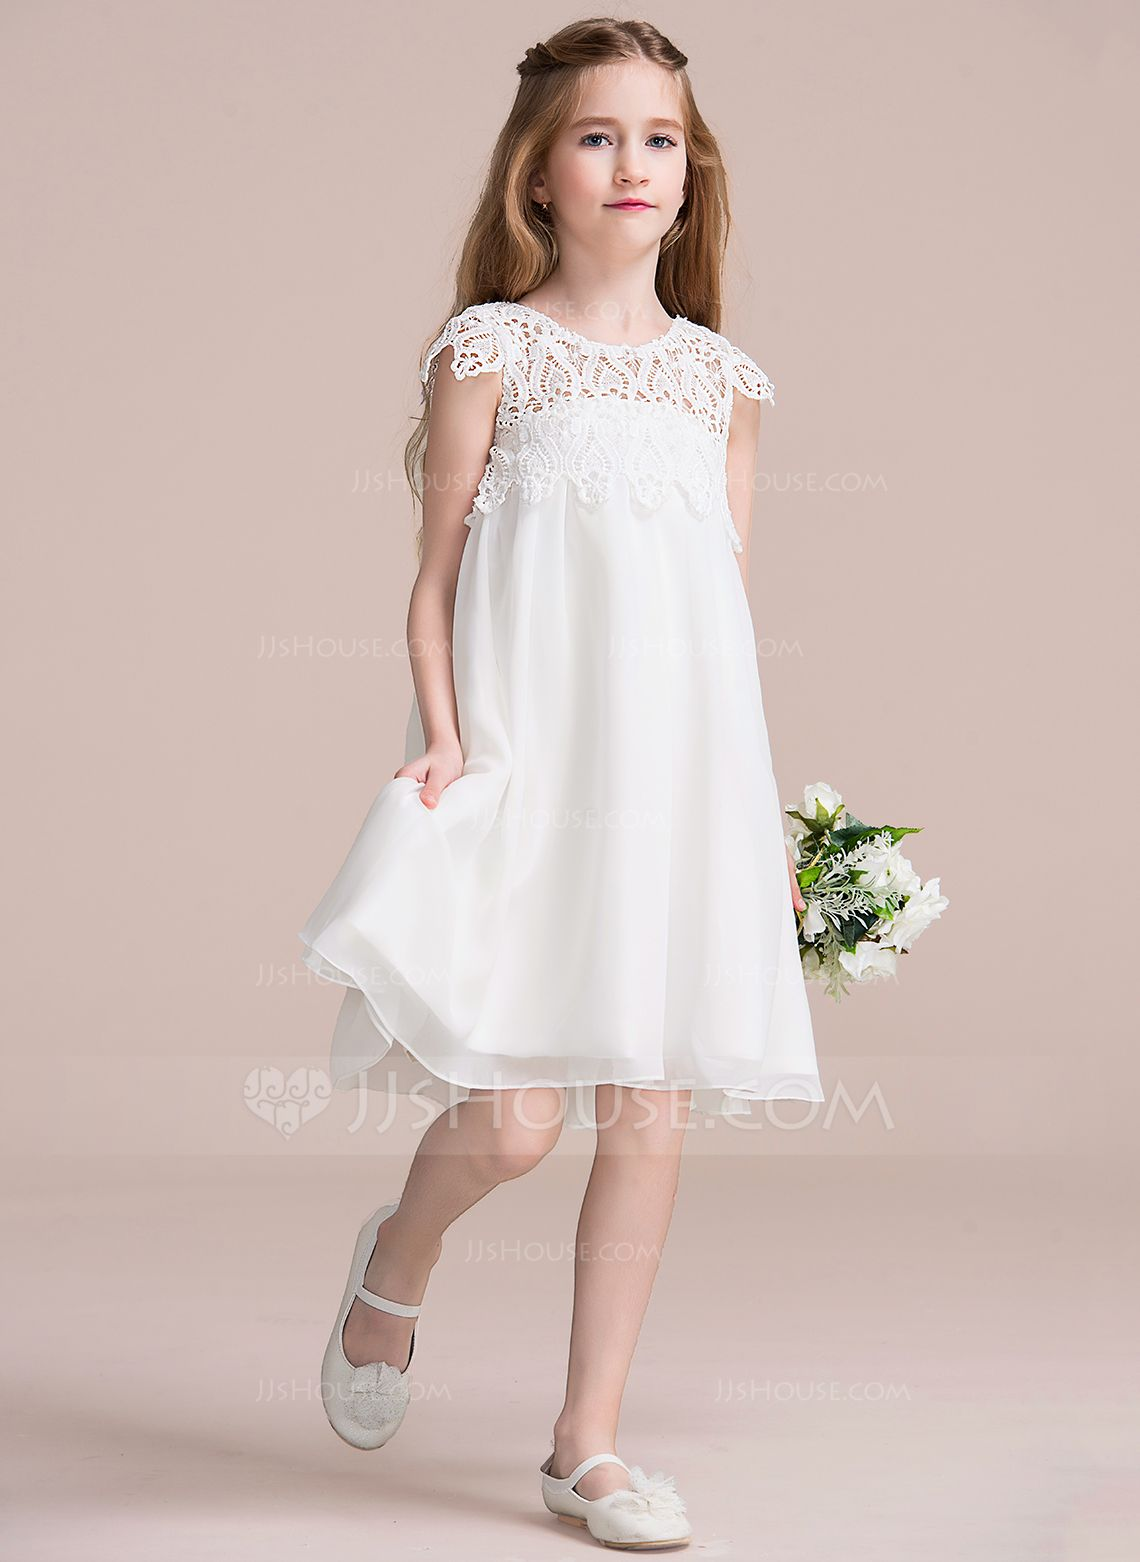 b53e8911f85a Empire Knee-length Flower Girl Dress - Chiffon/Lace Sleeveless Scoop Neck  With Ruffles